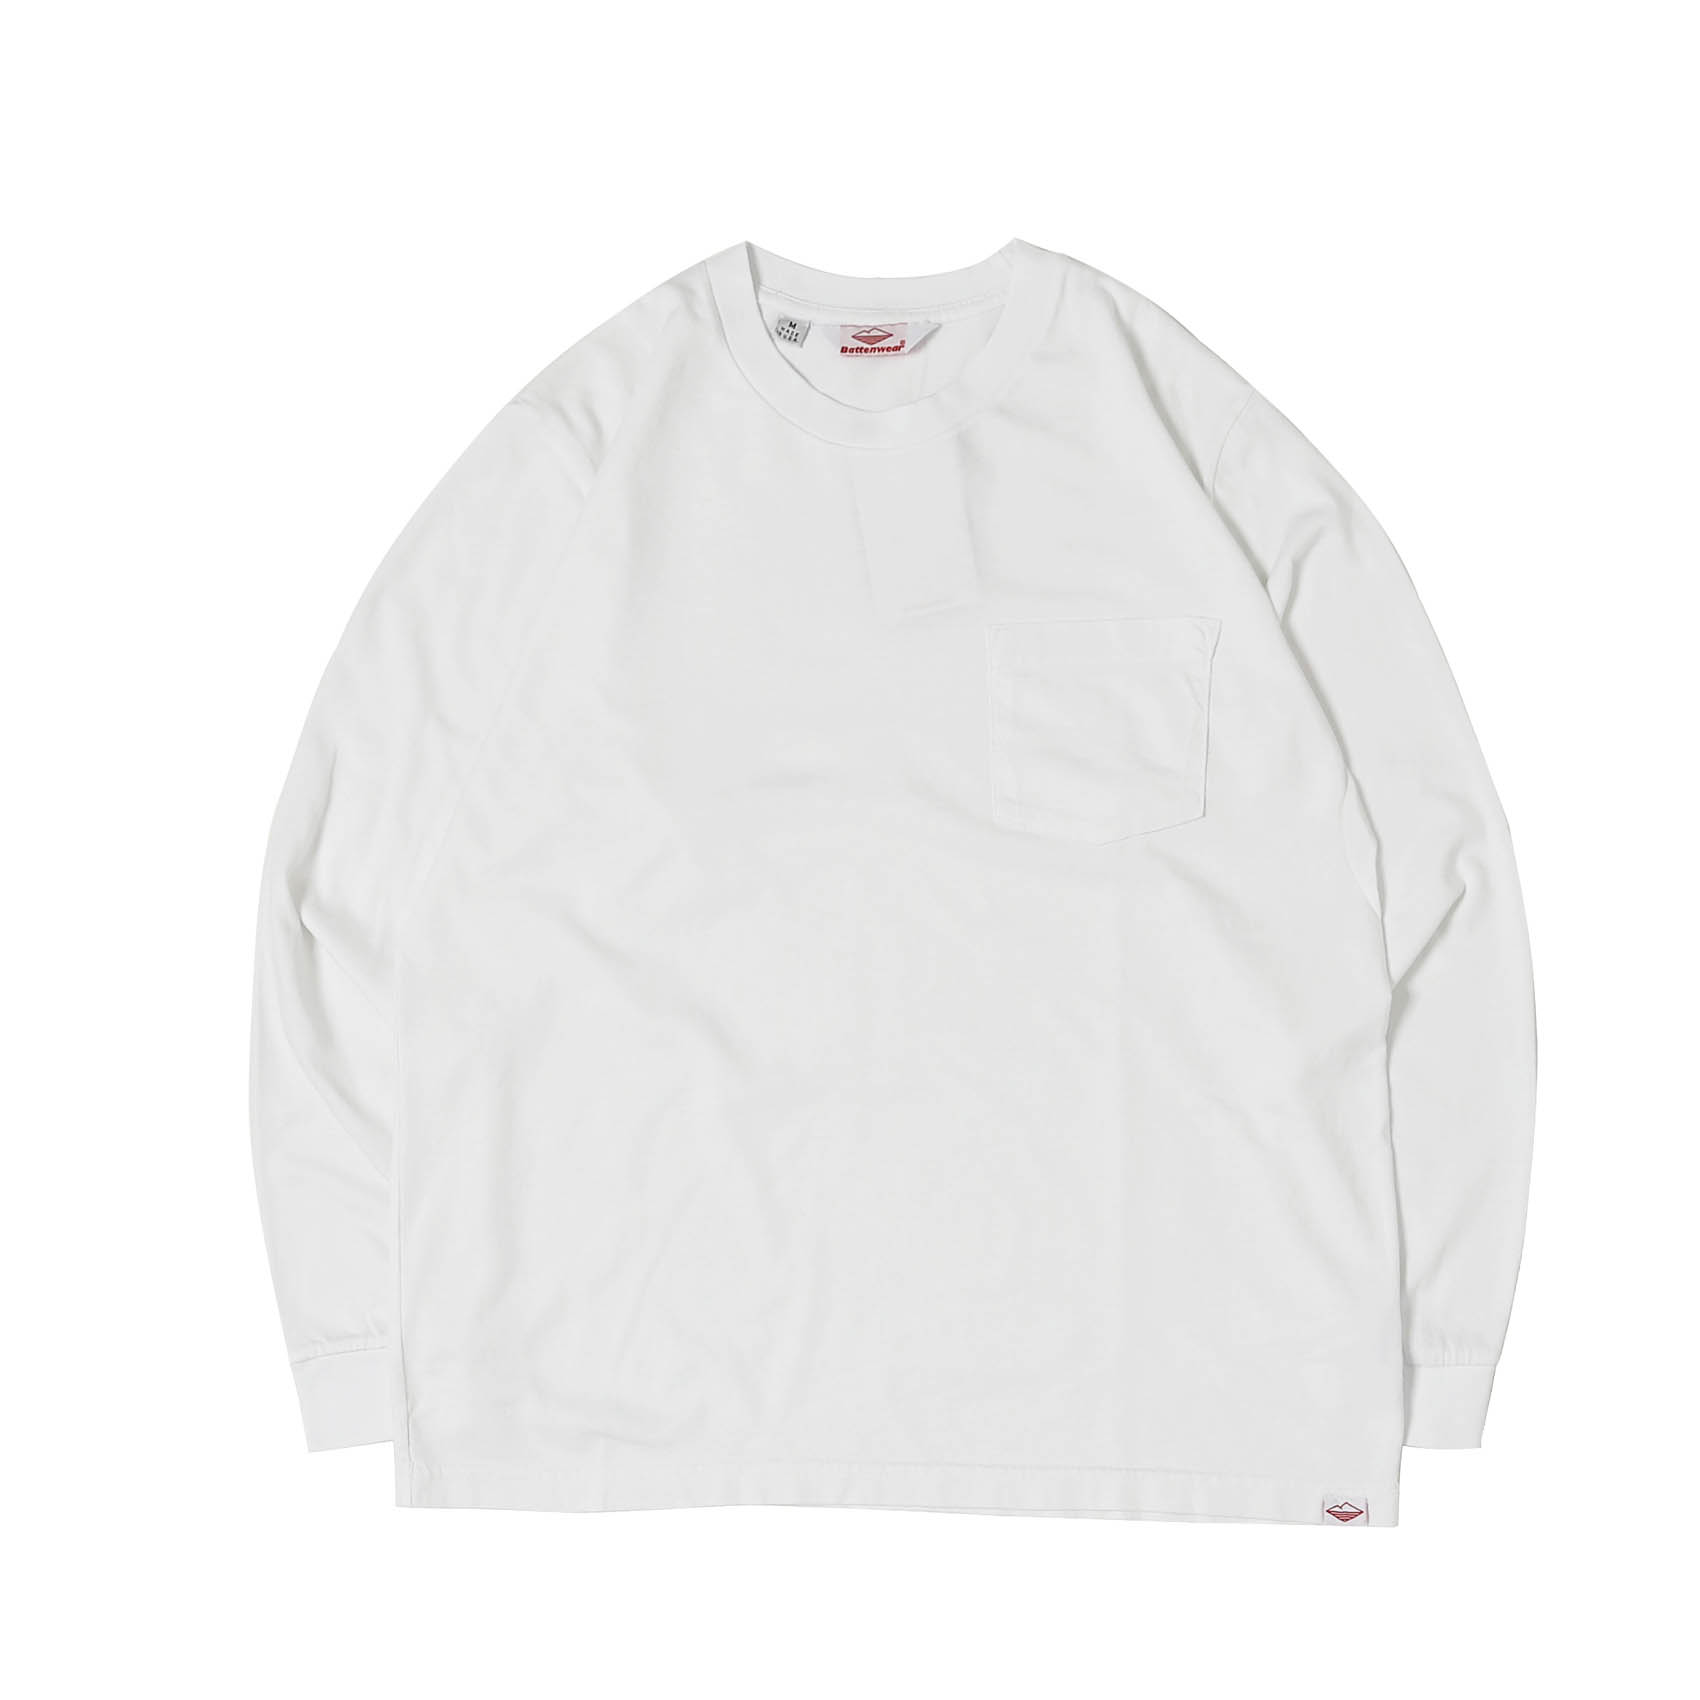 L/S POCKET TEE - WHITE